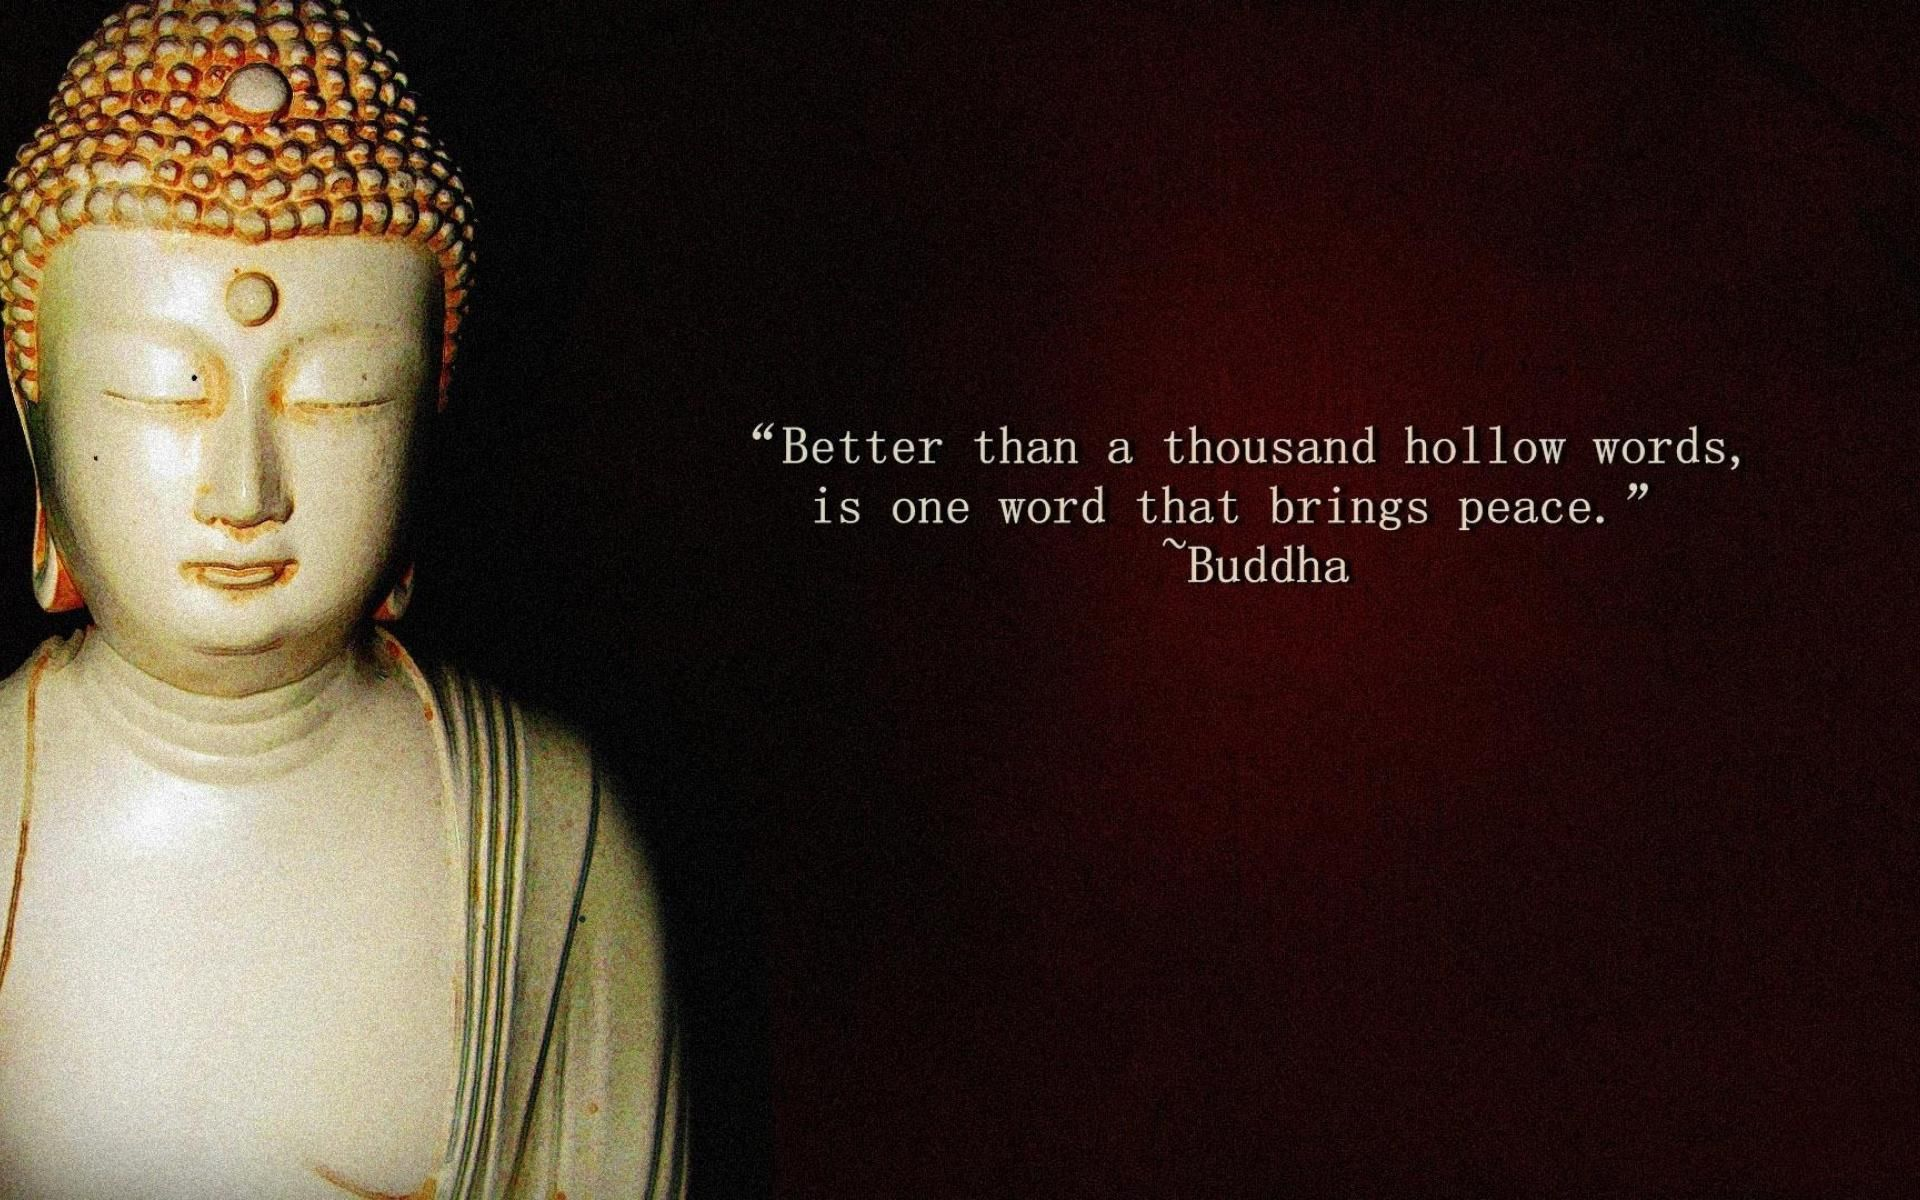 Buddhist Art Qoute Typography Buddha Digital Buddha Quote Statue Art Quote Hd Wallpapers Buddha Best Buddha Quotes Buddha Quote